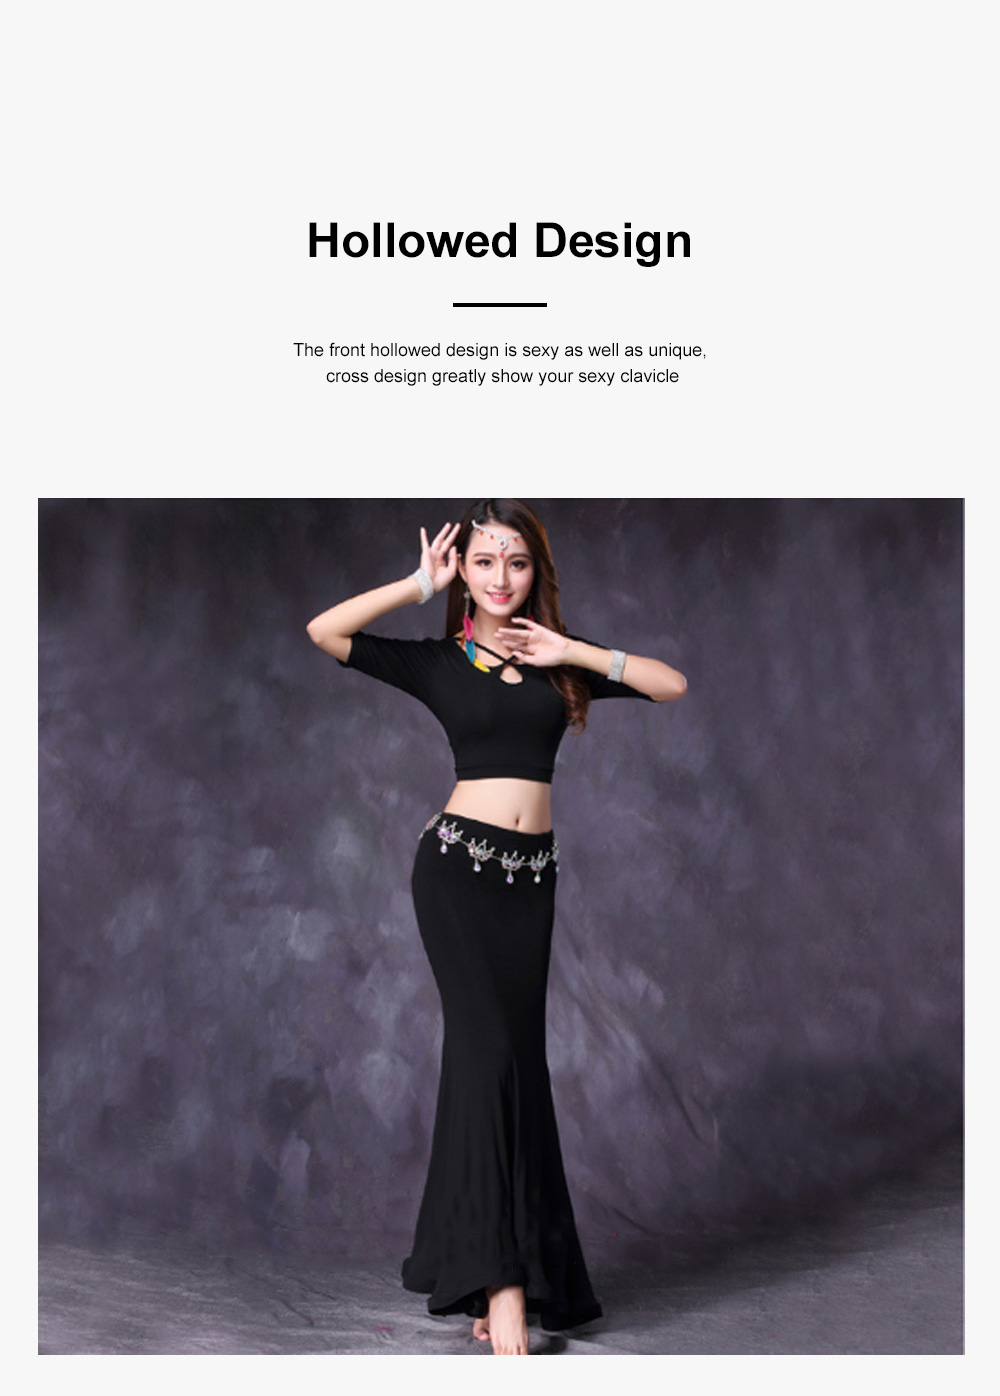 Belly Dance Costume Solid Color Set with Jewelry Decoration Fishtail Hemline Sheathe Dress 5